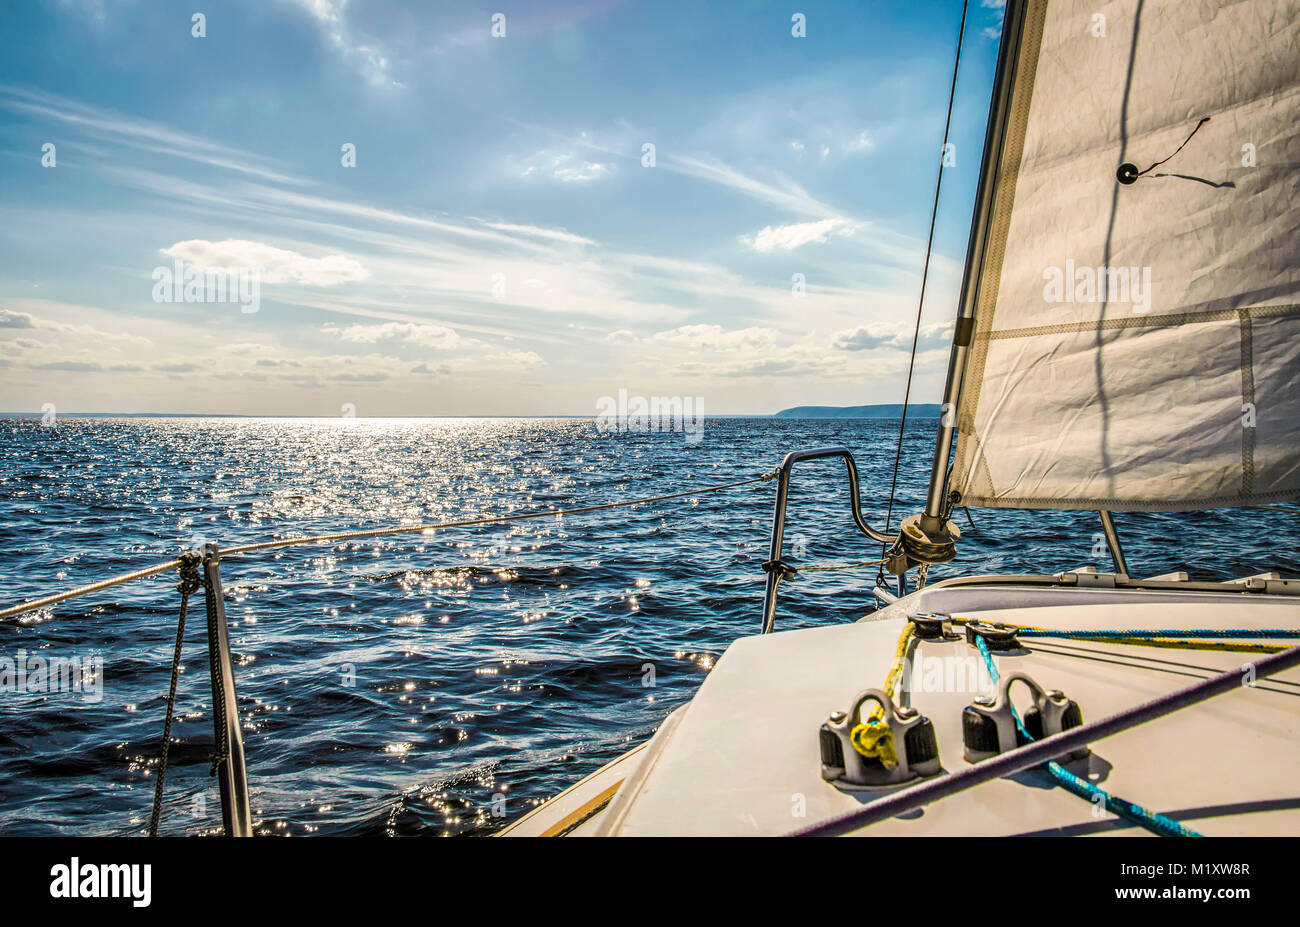 Skating on a white yacht on the blue sea Stock Photo: 173308935 - Alamy